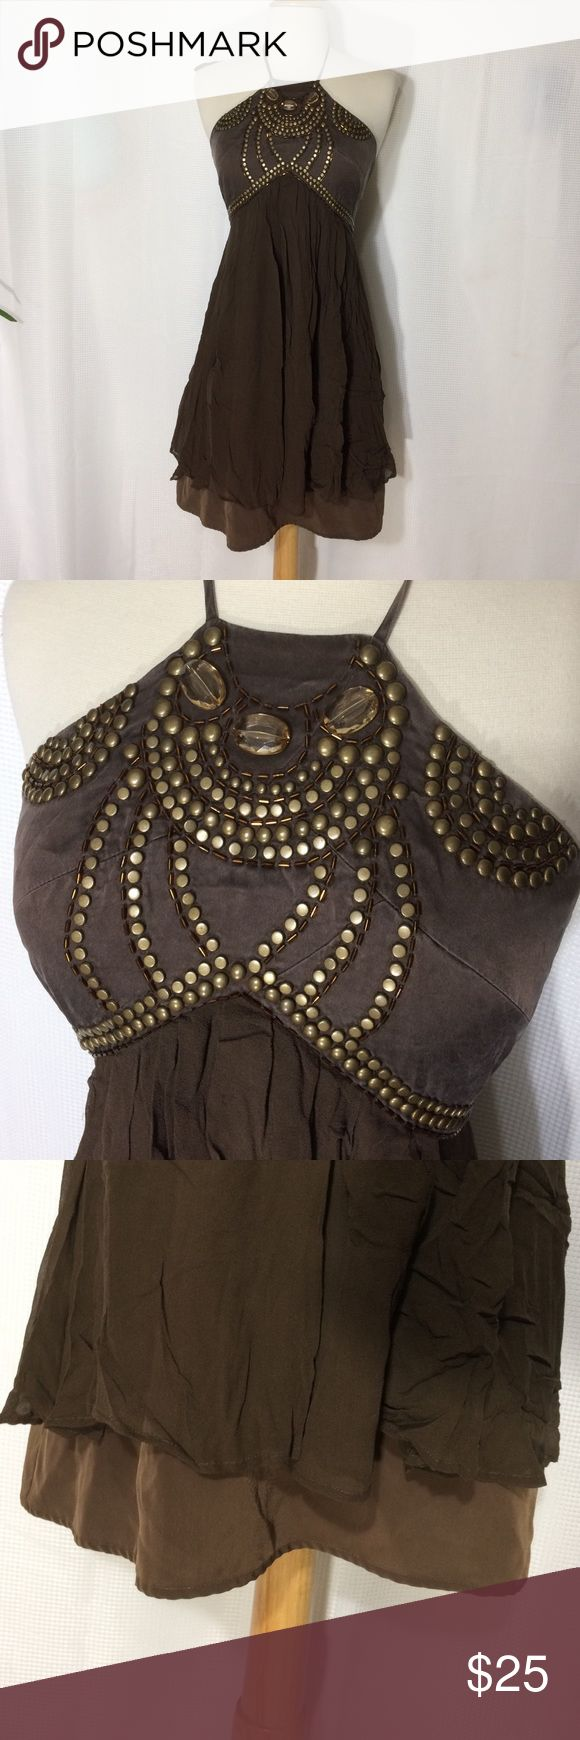 Brown party dress Like new. Semi formal short dress. (It does zip all the way but not on my mannequin). Dresses Mini